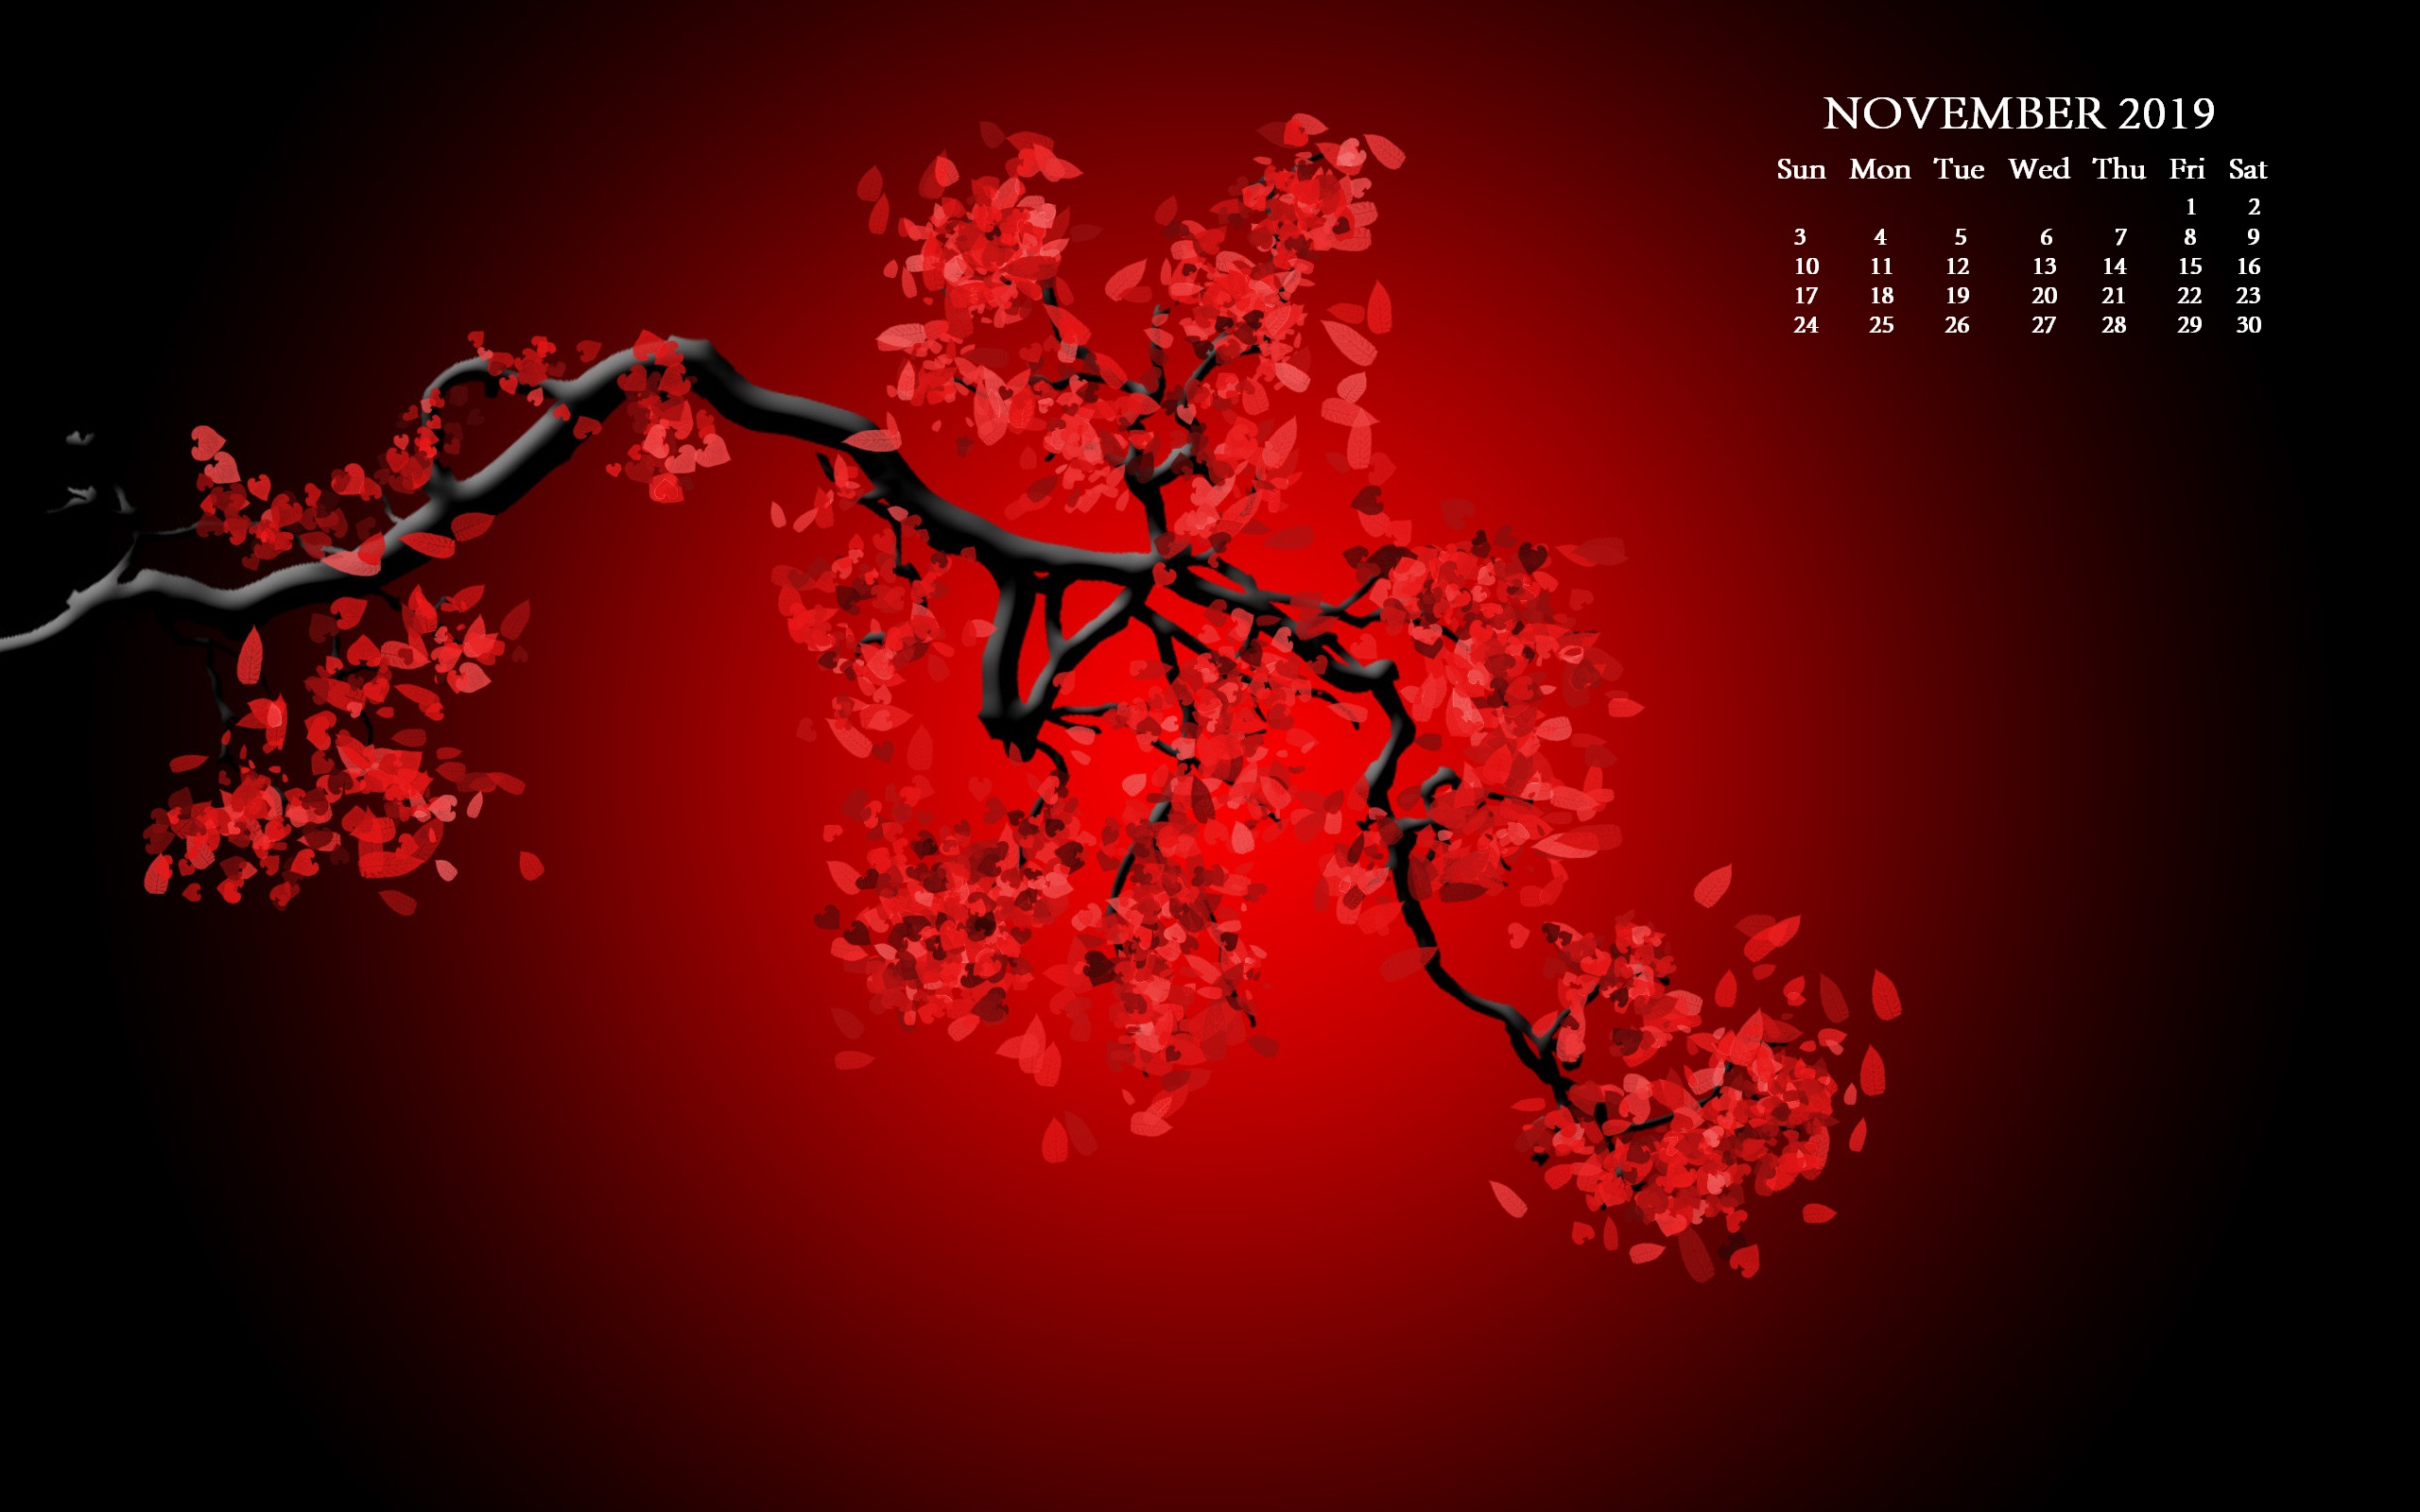 November 2019 HD Desktop Calendar Wallpaper